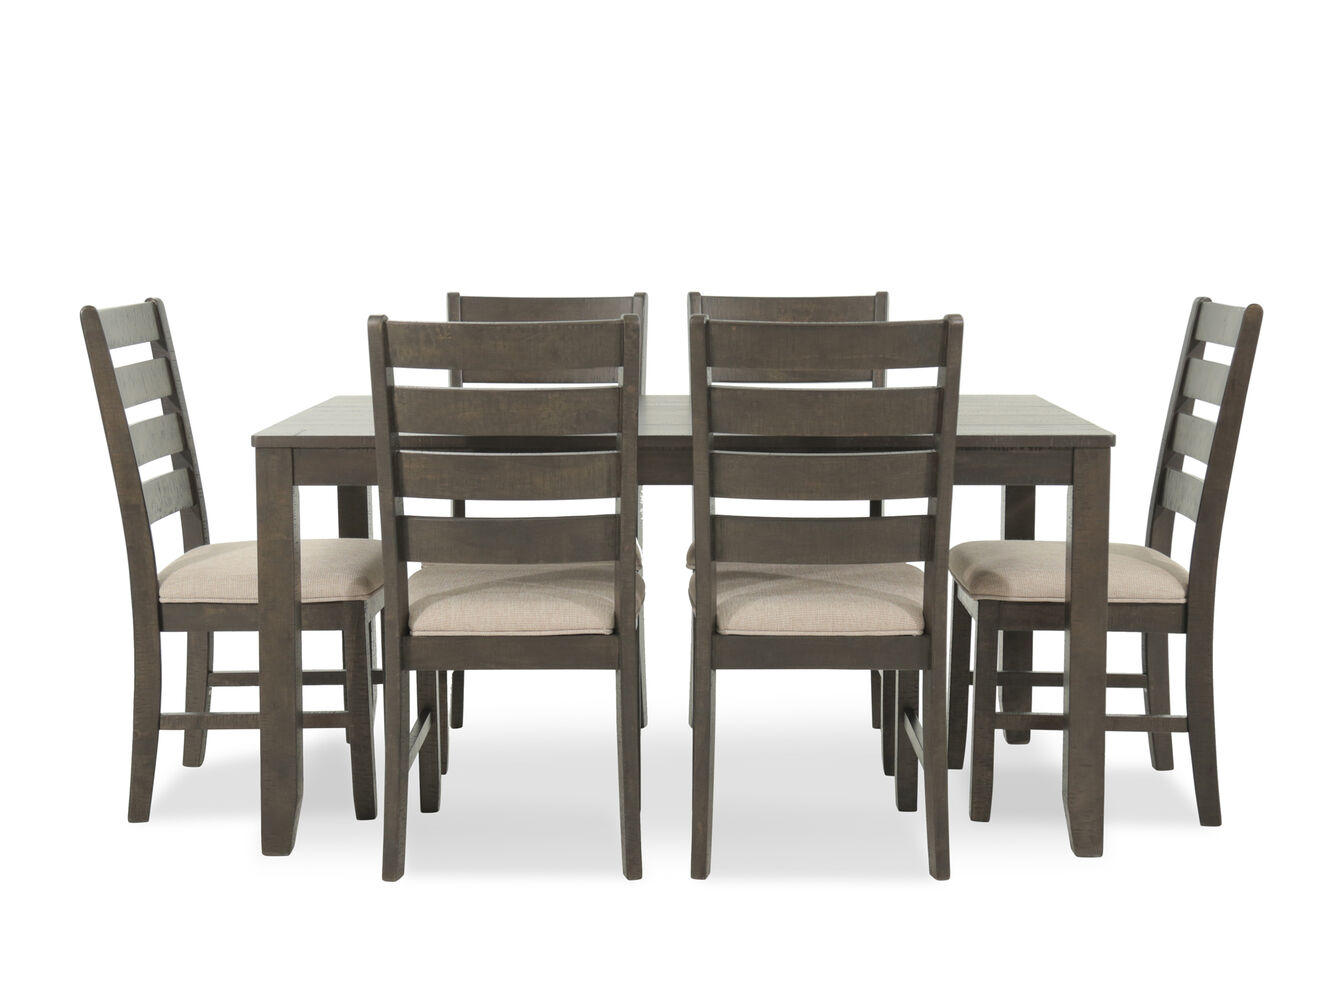 Seven piece contemporary 60 39 39 dining set in brown mathis for Dinner set furniture